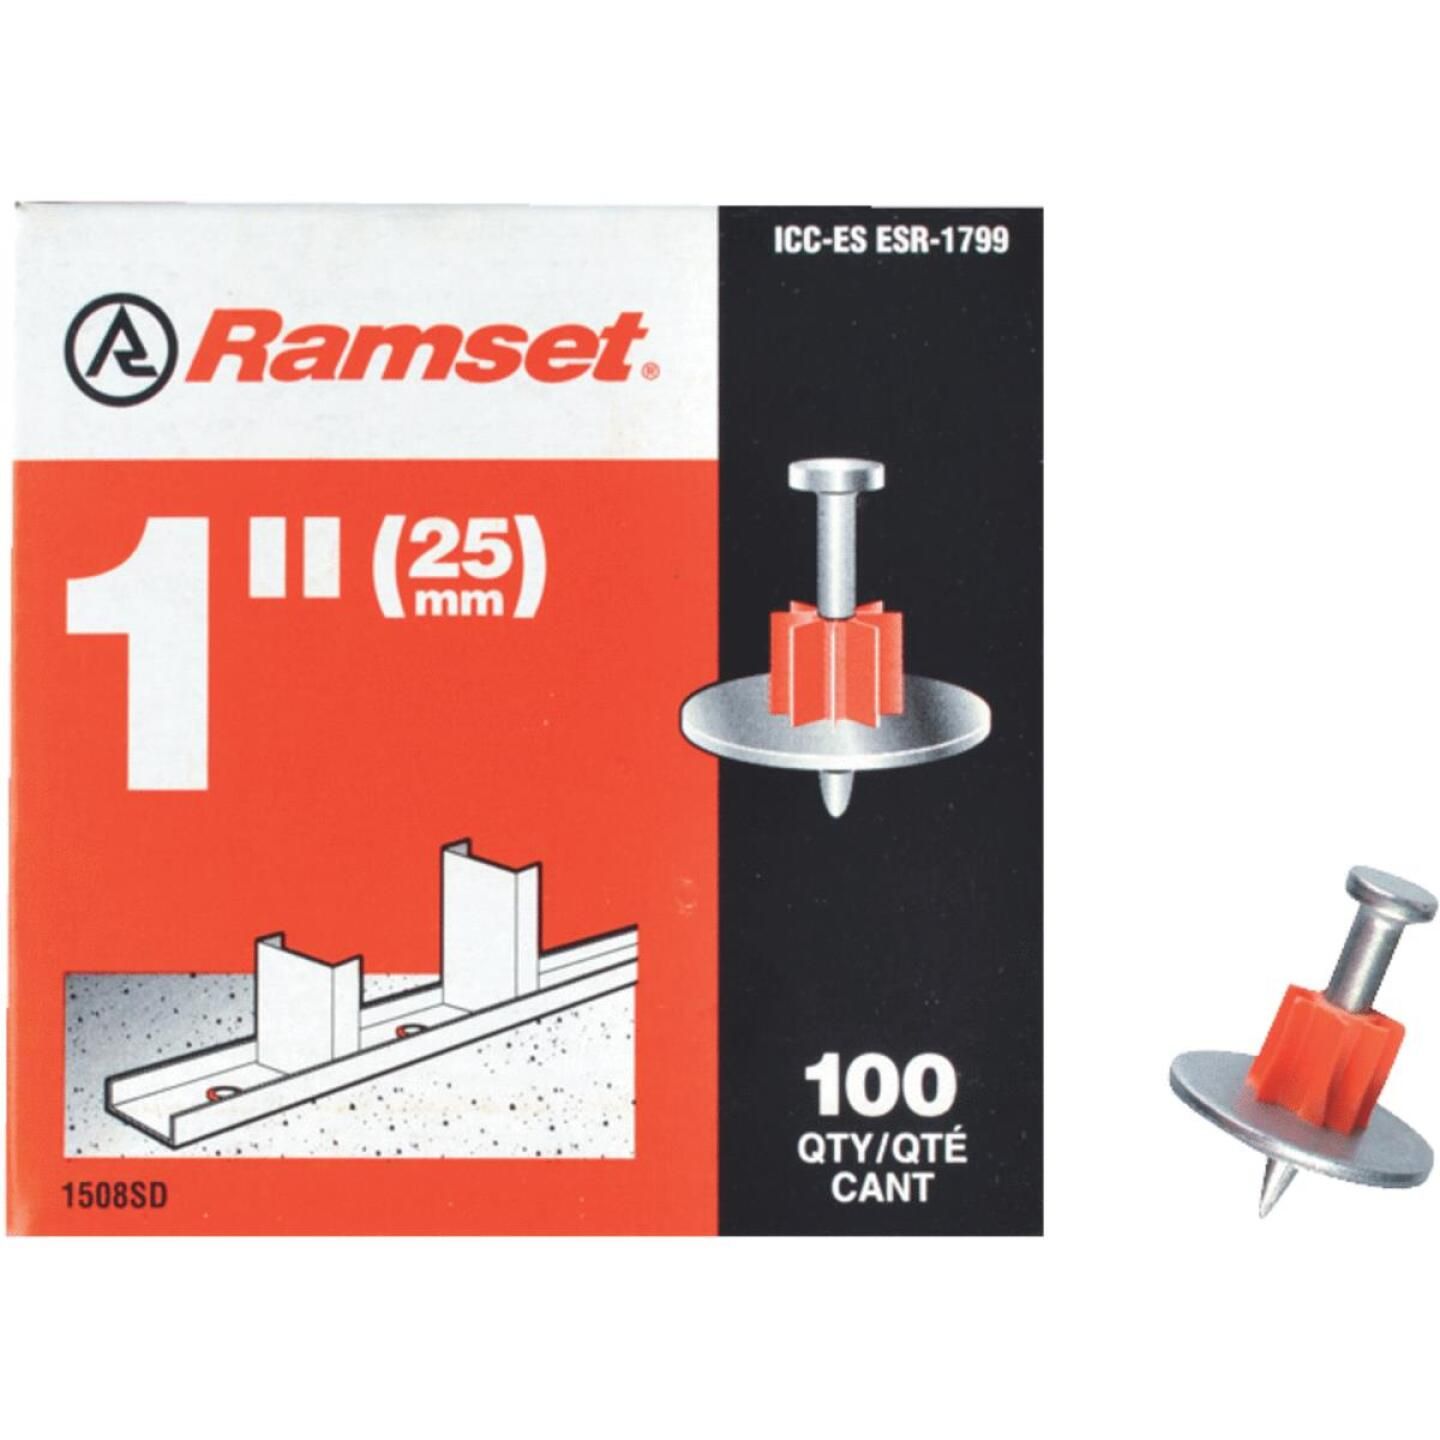 Ramset 1 In. Fastening Pin with Washer (100-Pack) Image 1